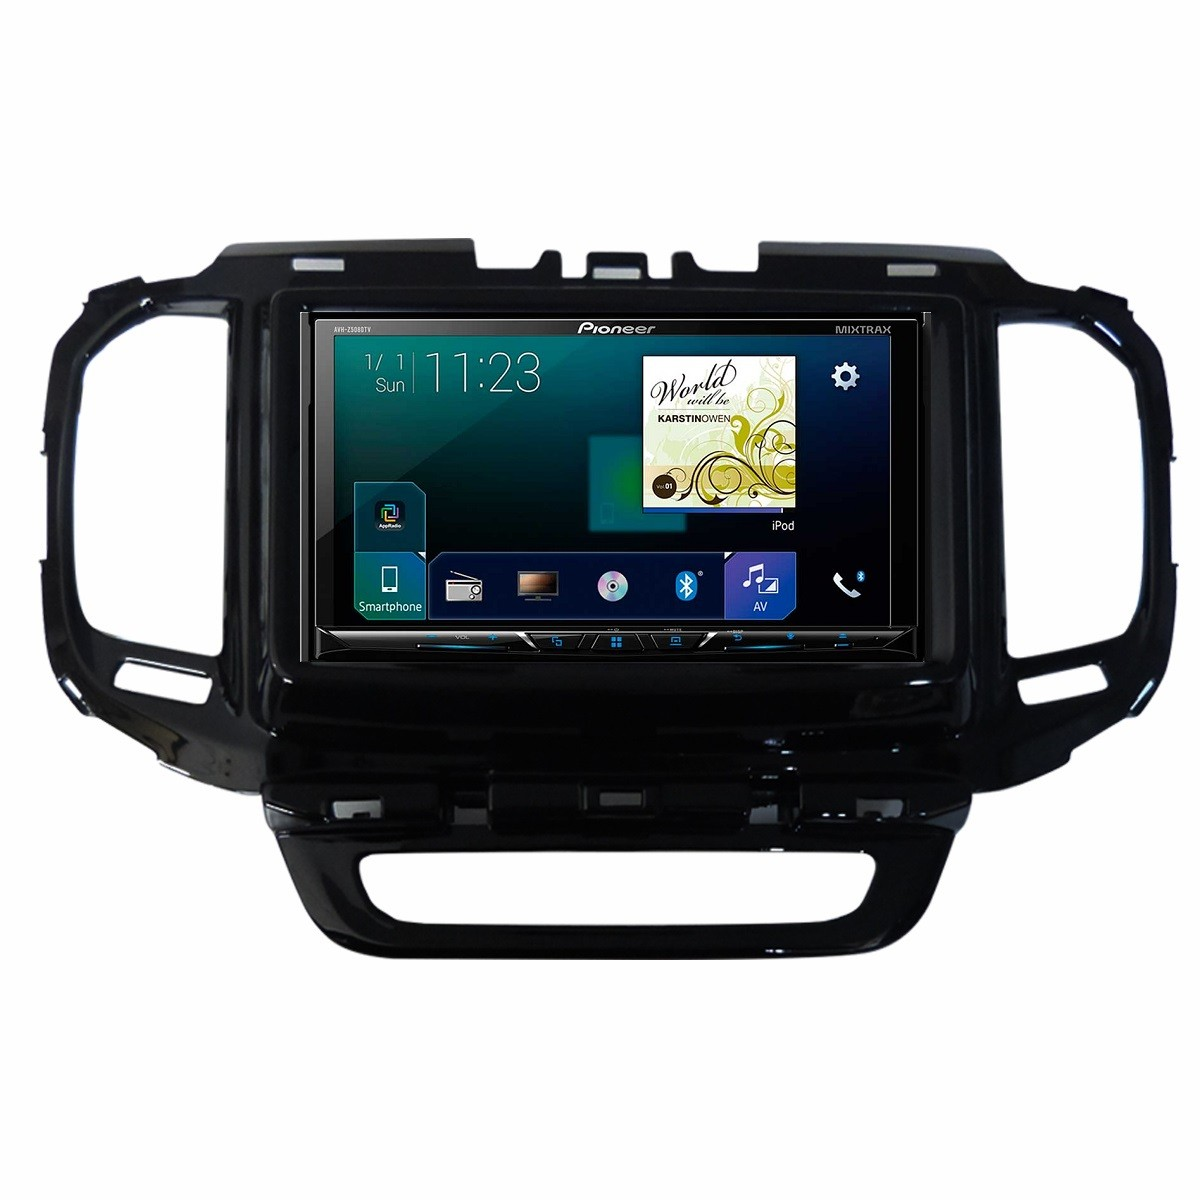 Central Multimidia Fiat Toro - Pioneer AVH-A4180TV + Interface de Volante + Moldura 2 Din -  Com DVD GPS Wase Mapa Bluetooth MP3 USB Ipod SD Card Câmera de Ré Grátis